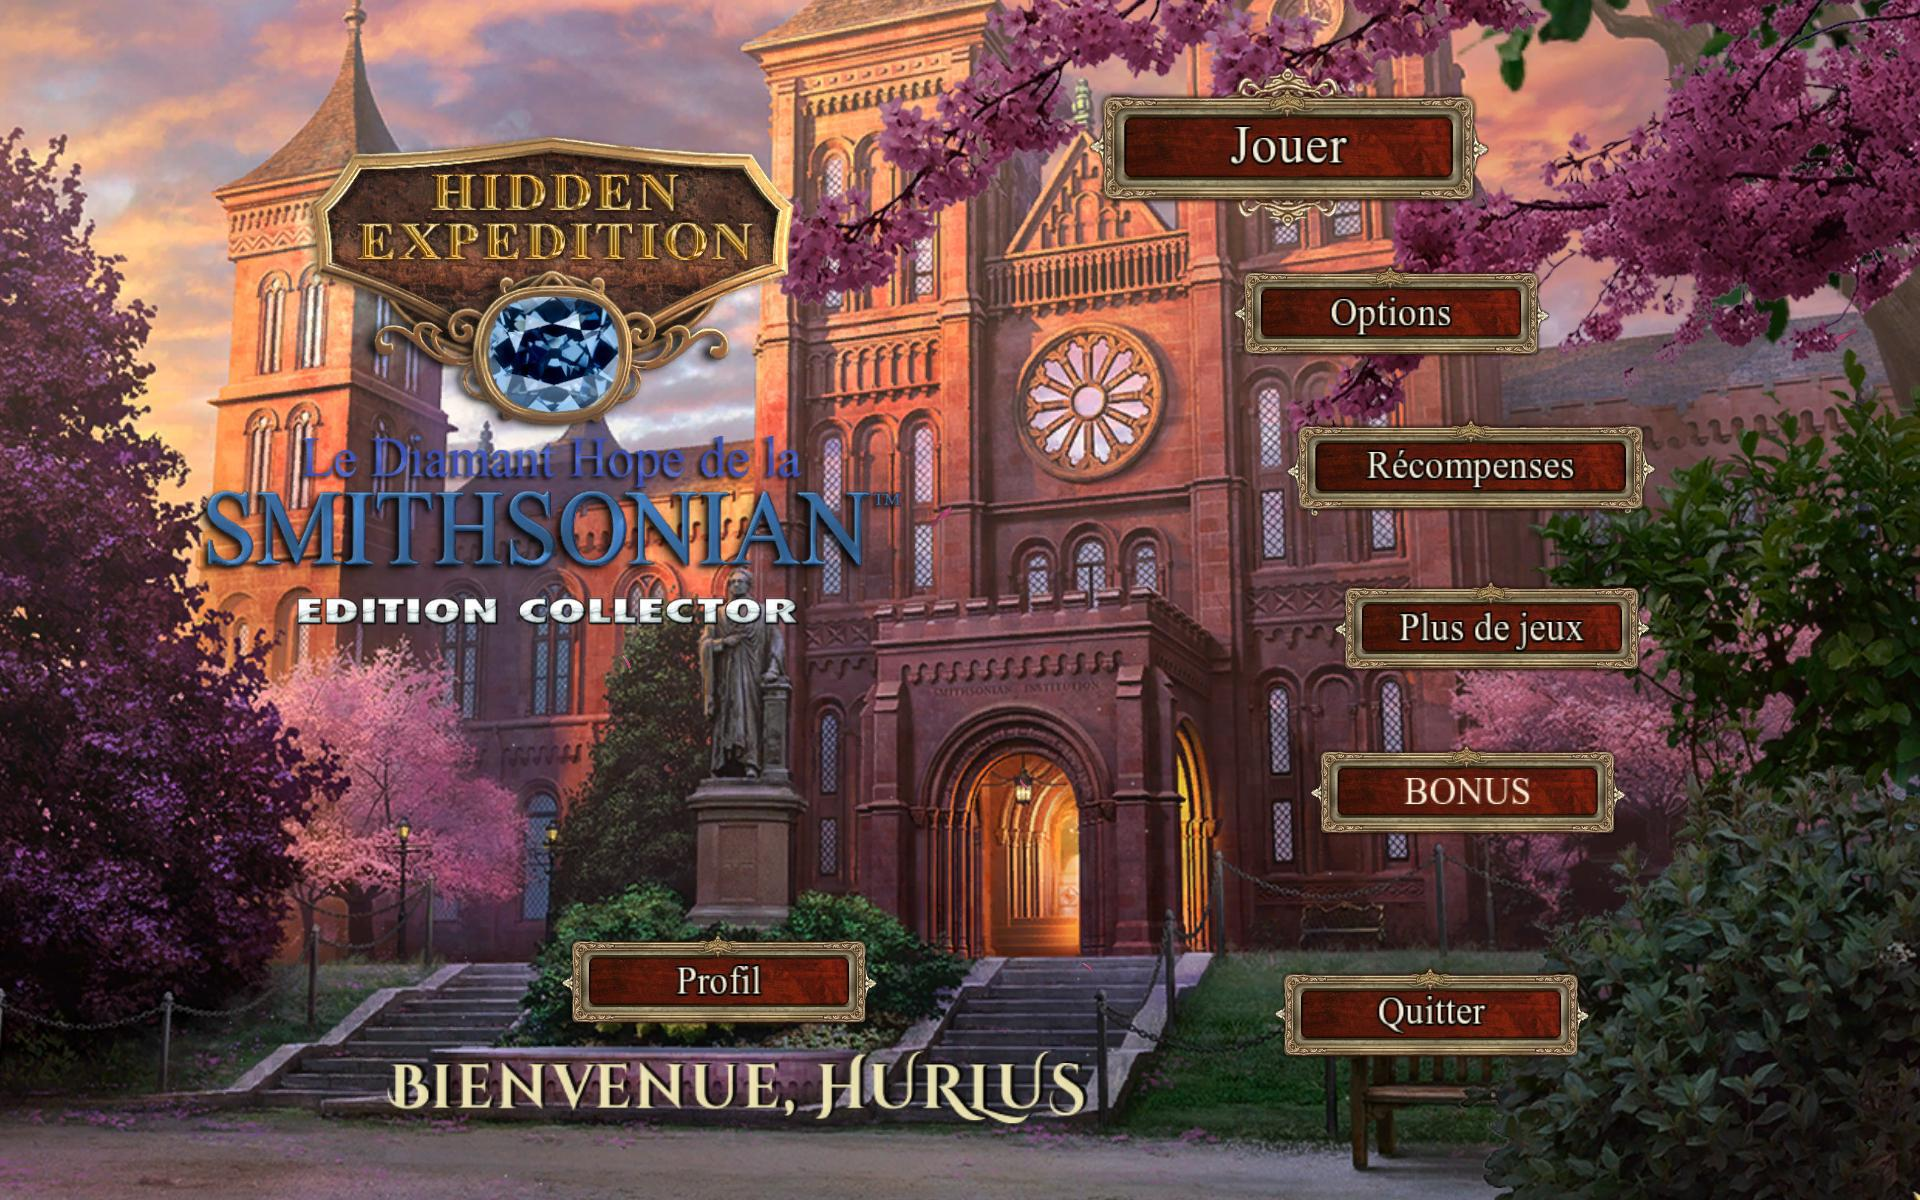 Hidden Expedition: Le Diamant Hope de la Smithsonian Edition Collector